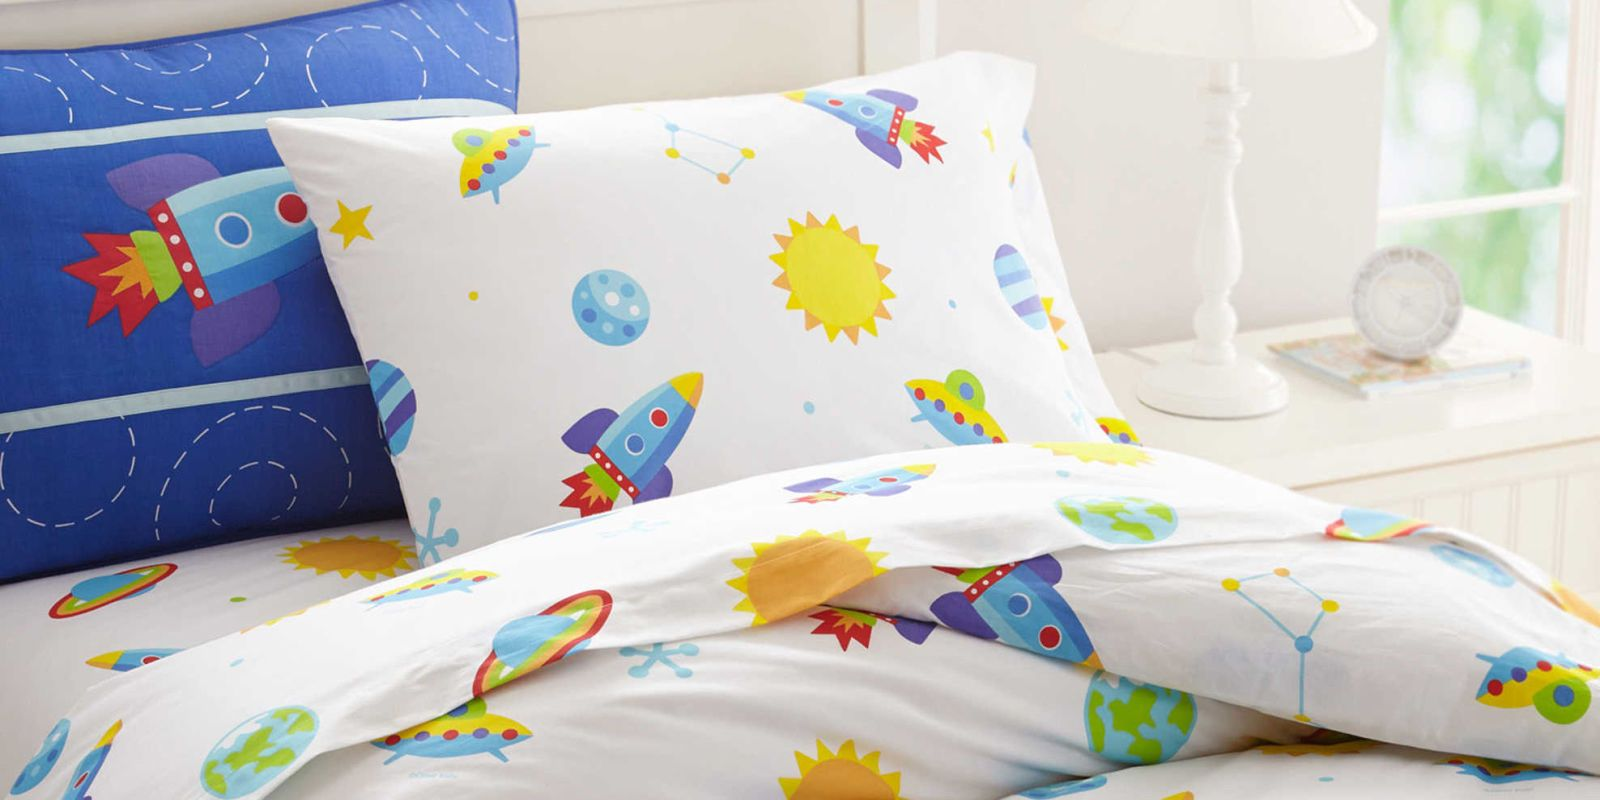 Celebrate Your Kidu0027s REM With Cool And Comfy Sheets, Comforters, Blankets,  And Pillows. Check Out Our Top Picks!